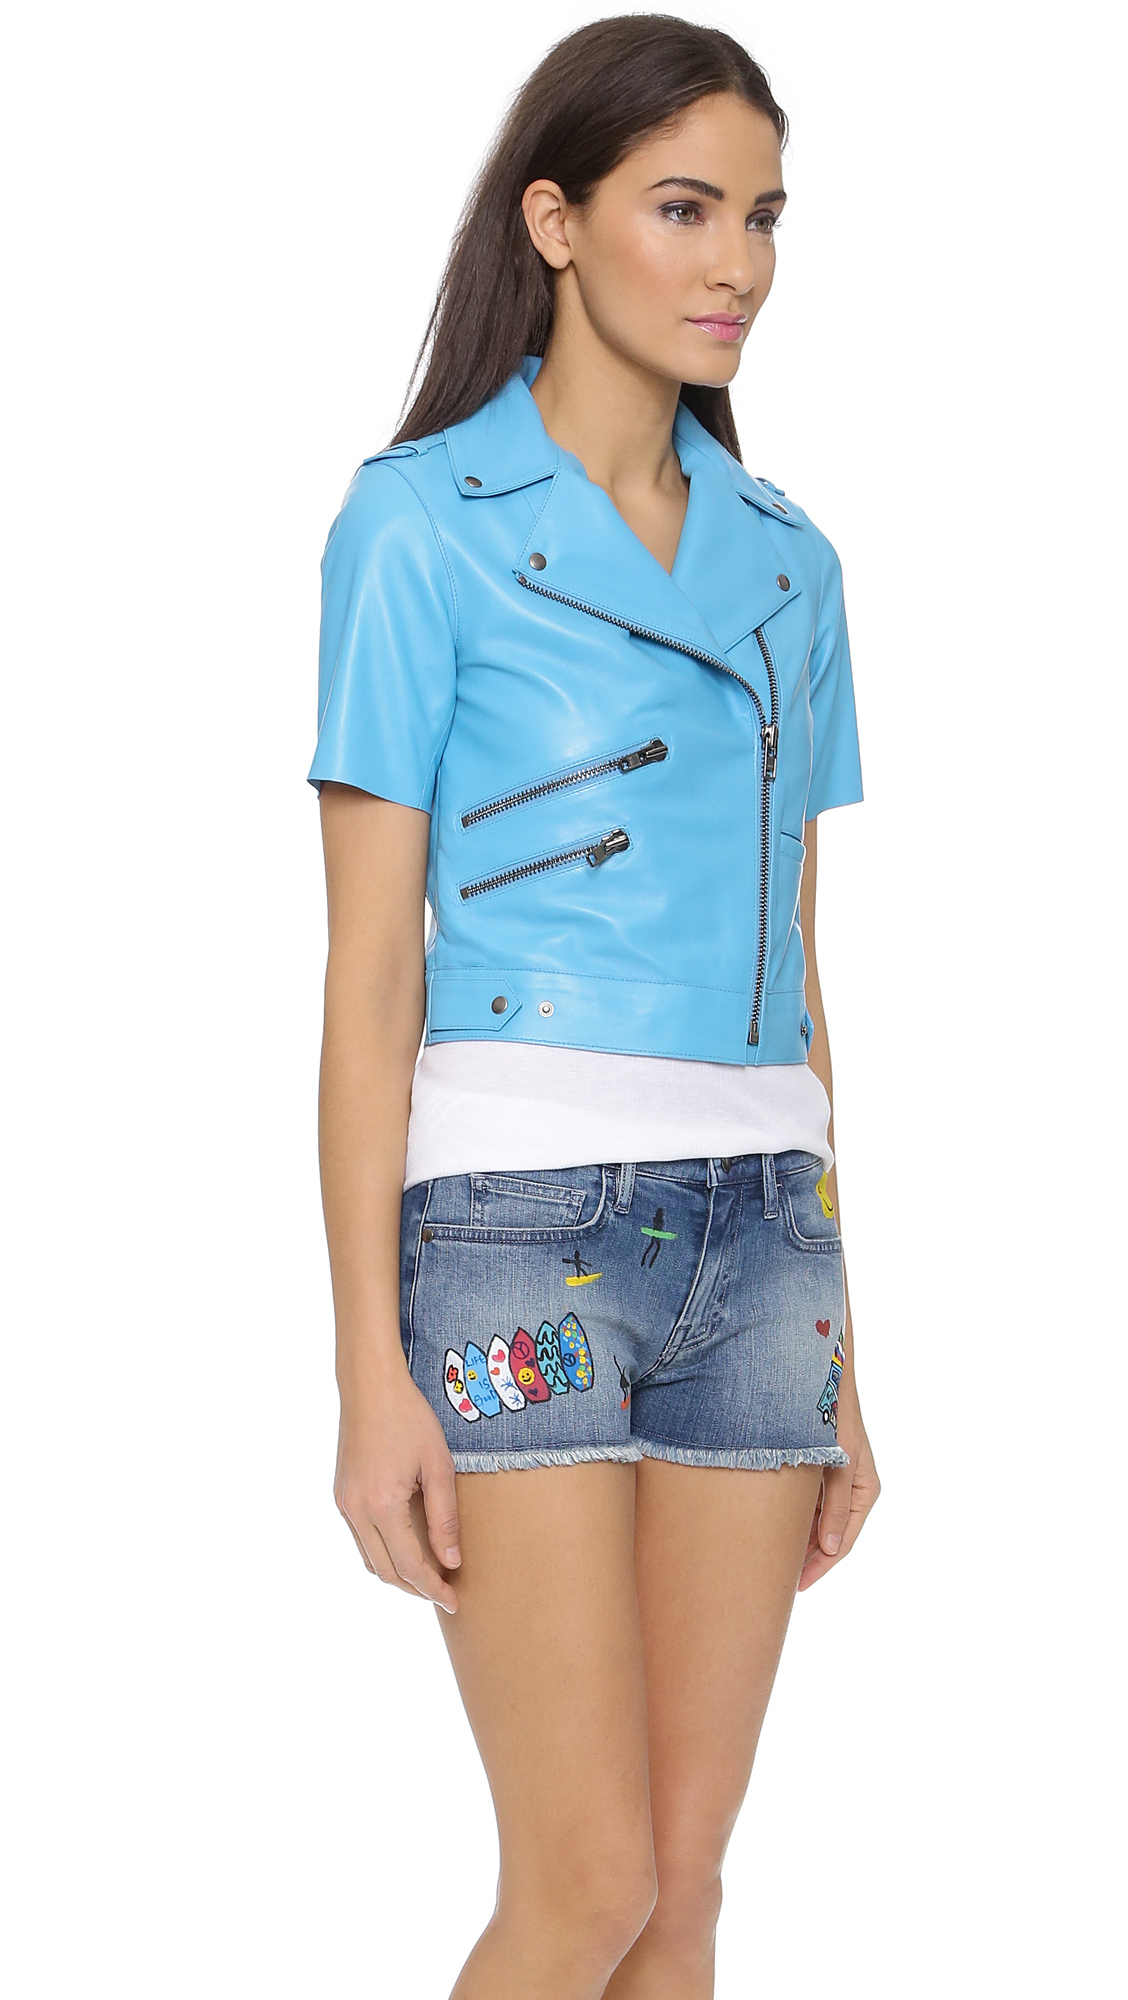 Mira mikati Short Sleeve Leather Jacket - Light Blue in Blue | Lyst